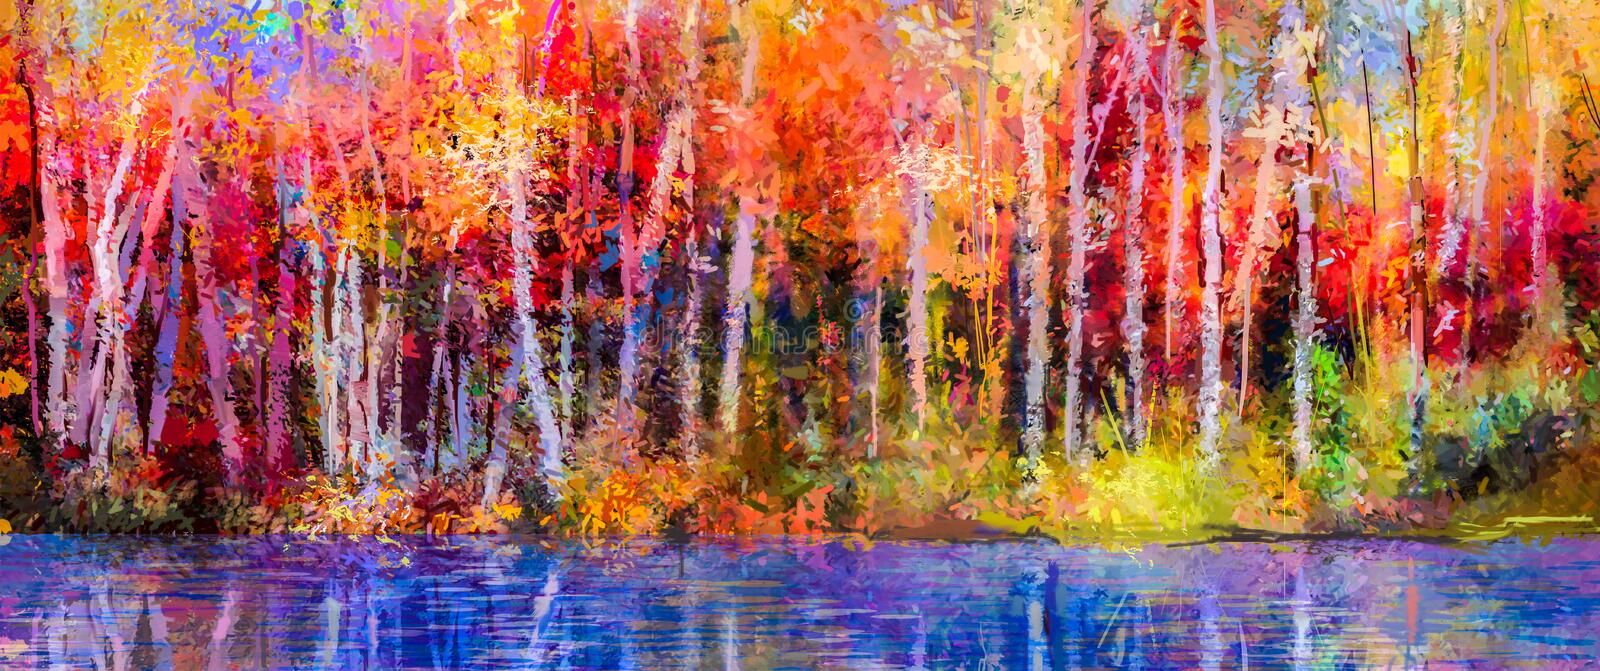 Oil painting landscape - colorful autumn trees. Oil painting colorful autumn trees. Semi abstract image of forest, aspen trees with yellow - red leaf and lake